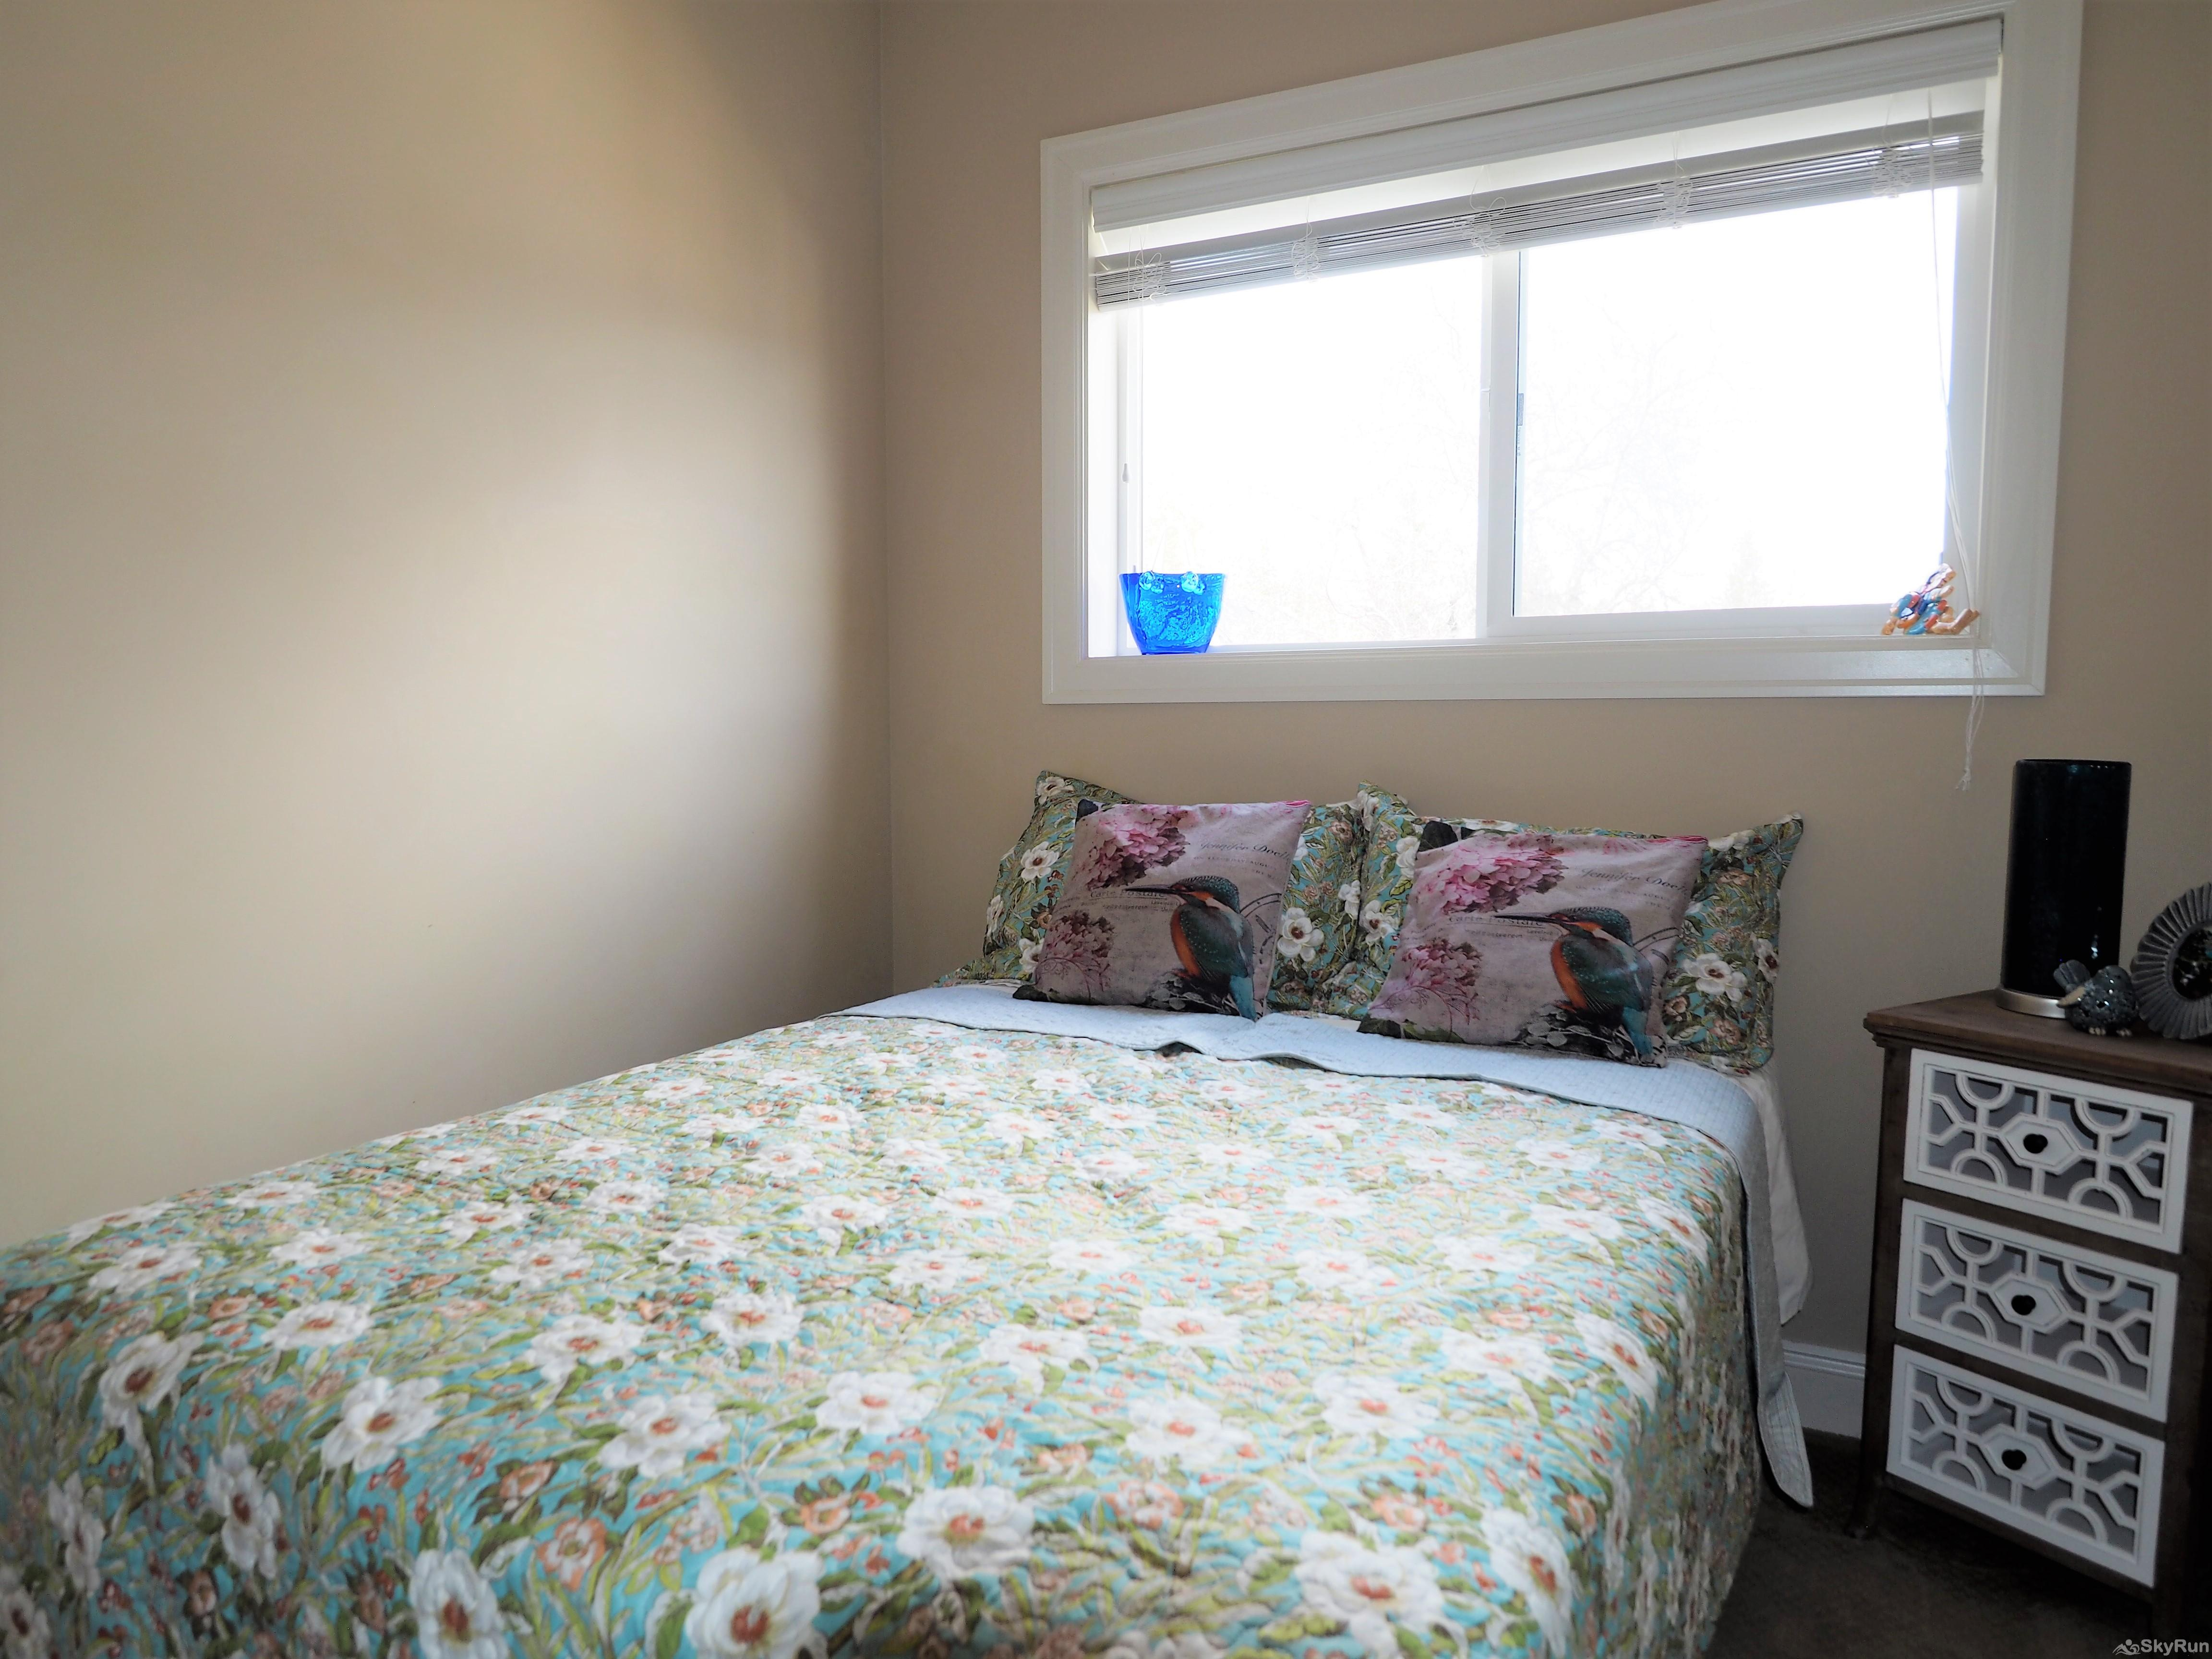 Old Summerland 3 bedroom home Large second bedroom upstairs with queen bed